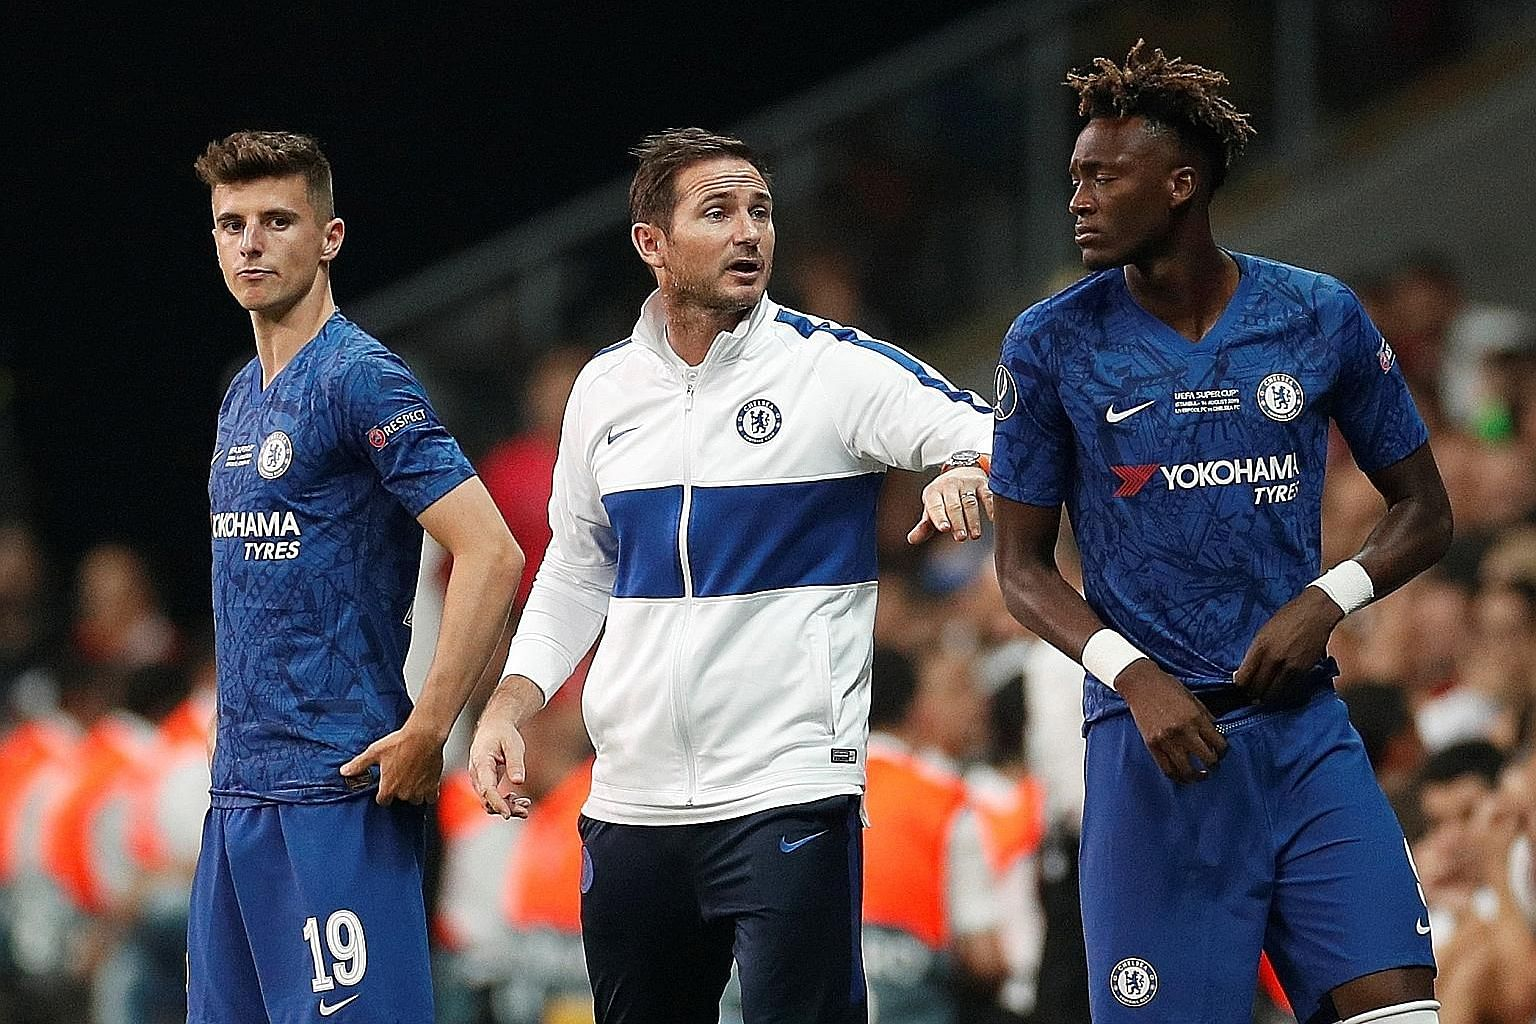 Youngsters like Mason Mount (far left) and Tammy Abraham have been able to shine under new Chelsea manager Frank Lampard, who was bound by a transfer ban from signing players.